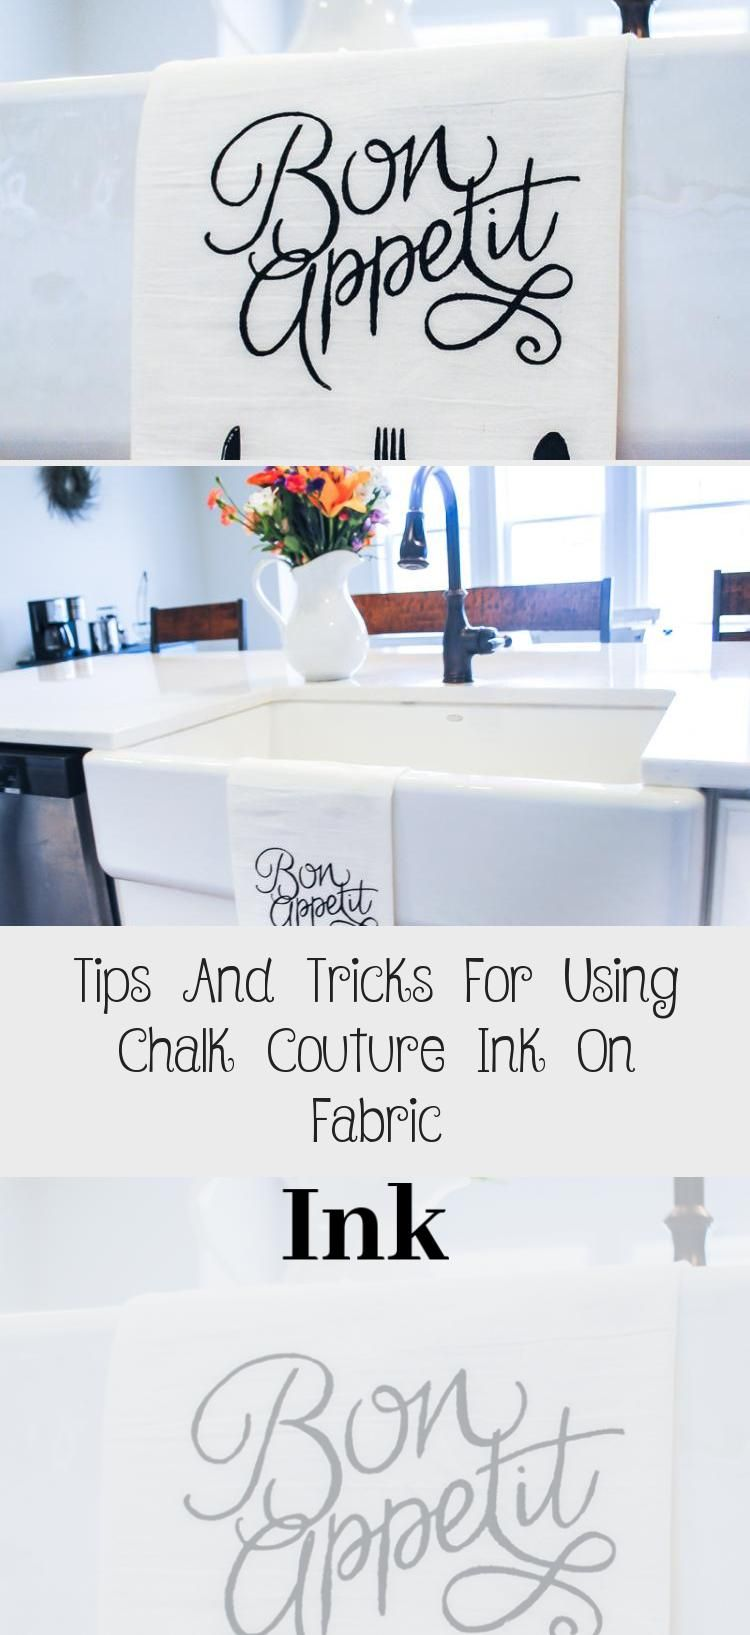 This video will explain exactly how to use Chalk Couture Ink on fabric!  Great tips and tricks!! #HomeDecorDIYVideosCheap #HomeDecorDIYVideosOnABudget #HomeDecorDIYVideosApartment #HomeDecorDIYVideosProjects #HomeDecorDIYVideosIdeas